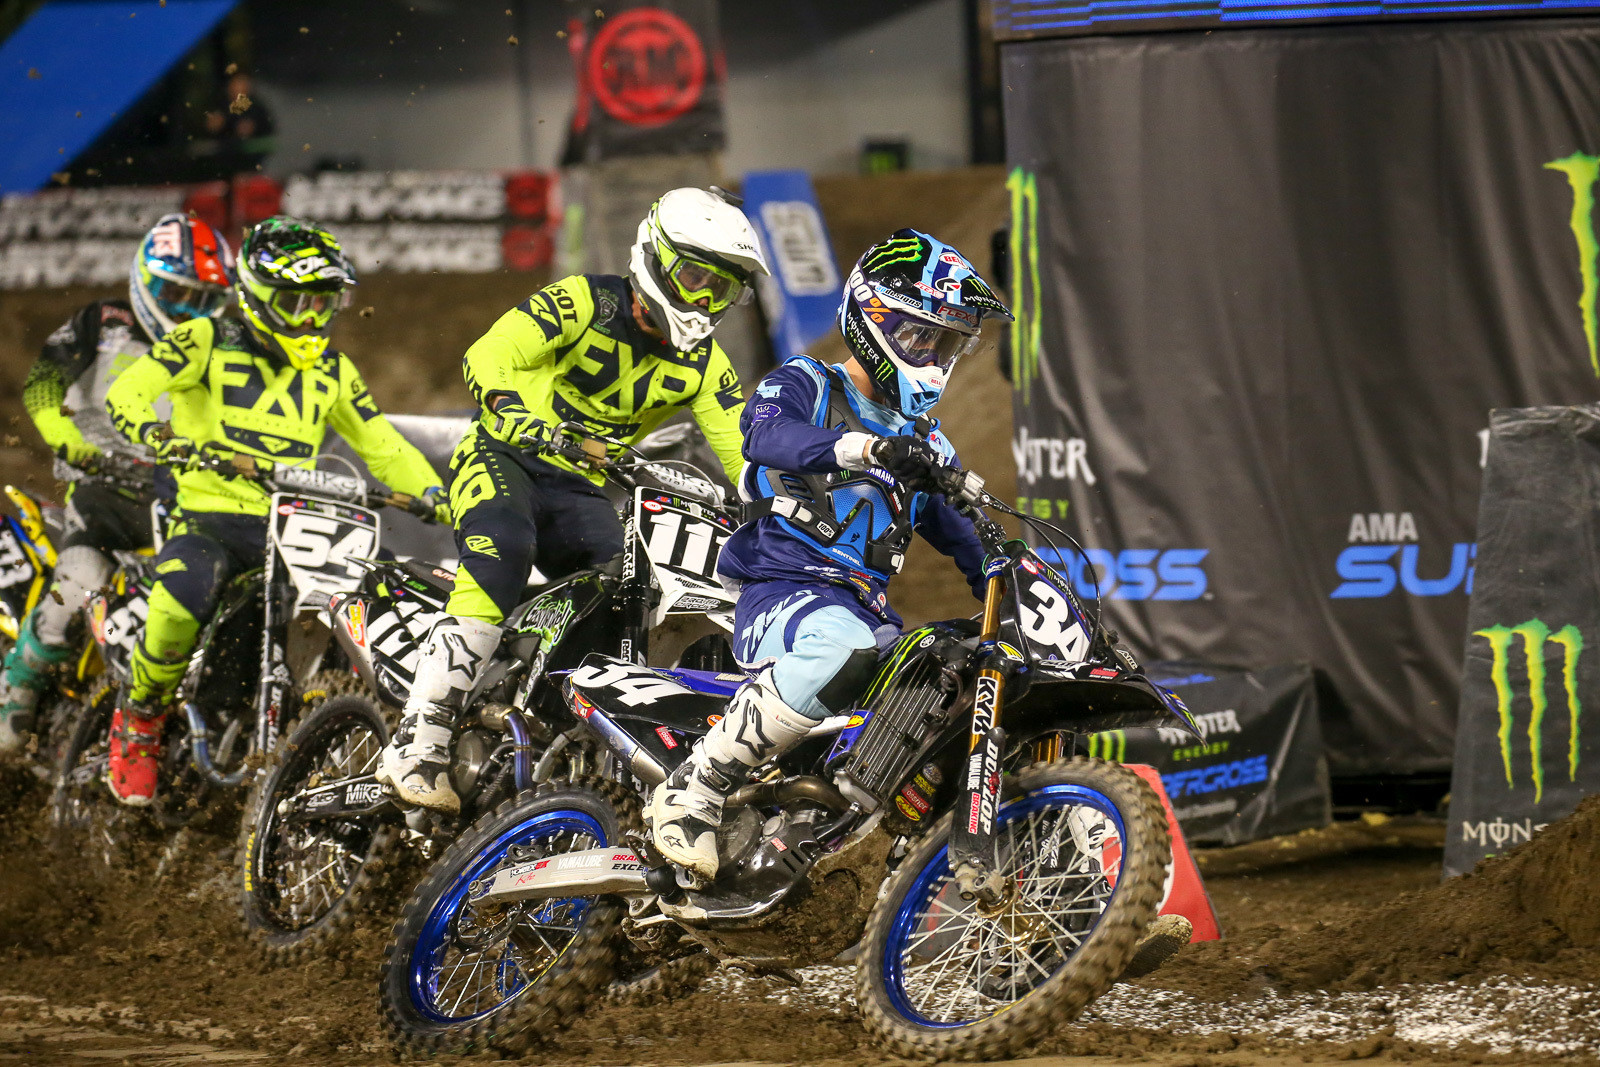 Once things got going, Dylan Ferrandis grabbed the holeshot and promptly hit the deck. In the mayhem me got his front brake cable ripped off, but he still came back to qualify.